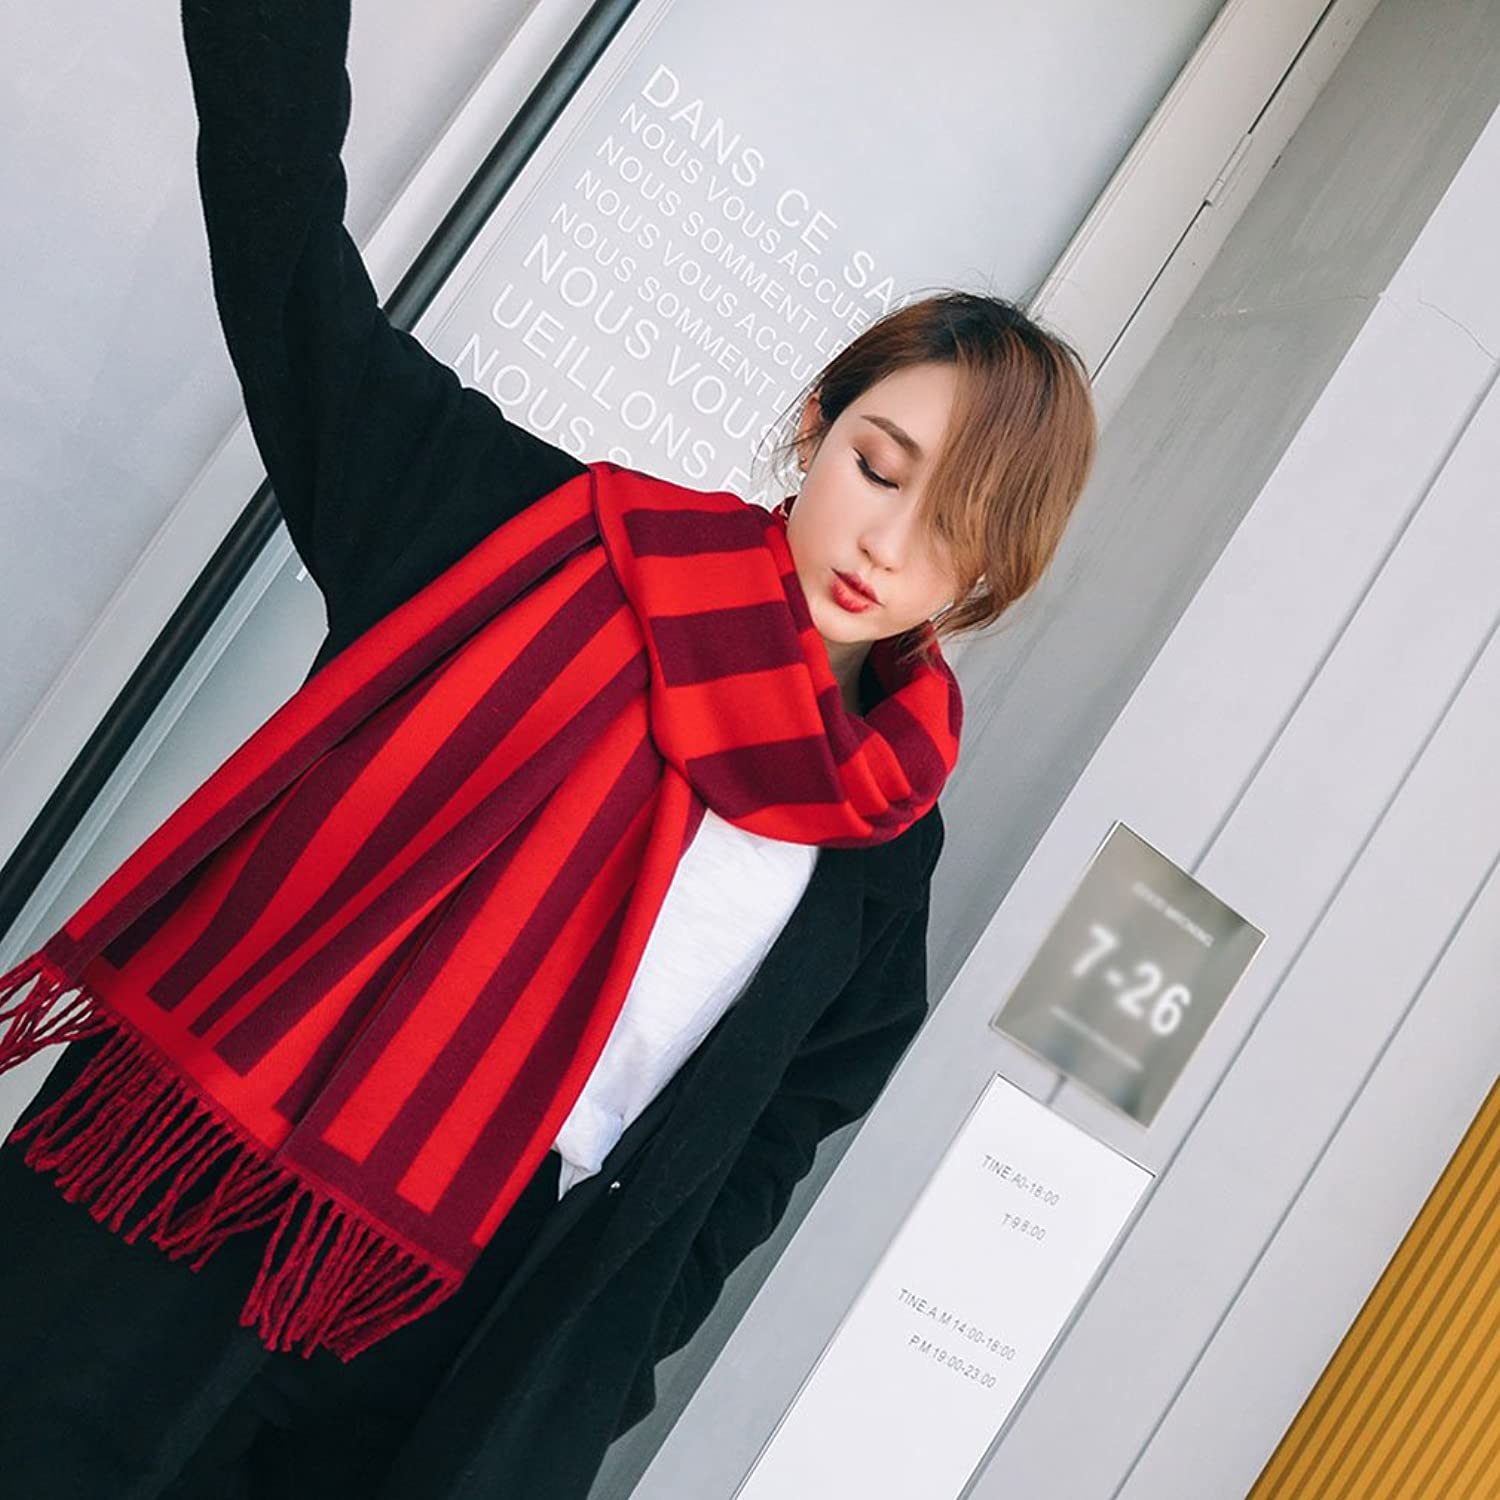 Lady's Shawl- Women's Scarf Fashionable Winter Warm Large Striped Blanket Plaid Scarf Wrap Shawl Decoration ( color   Red )